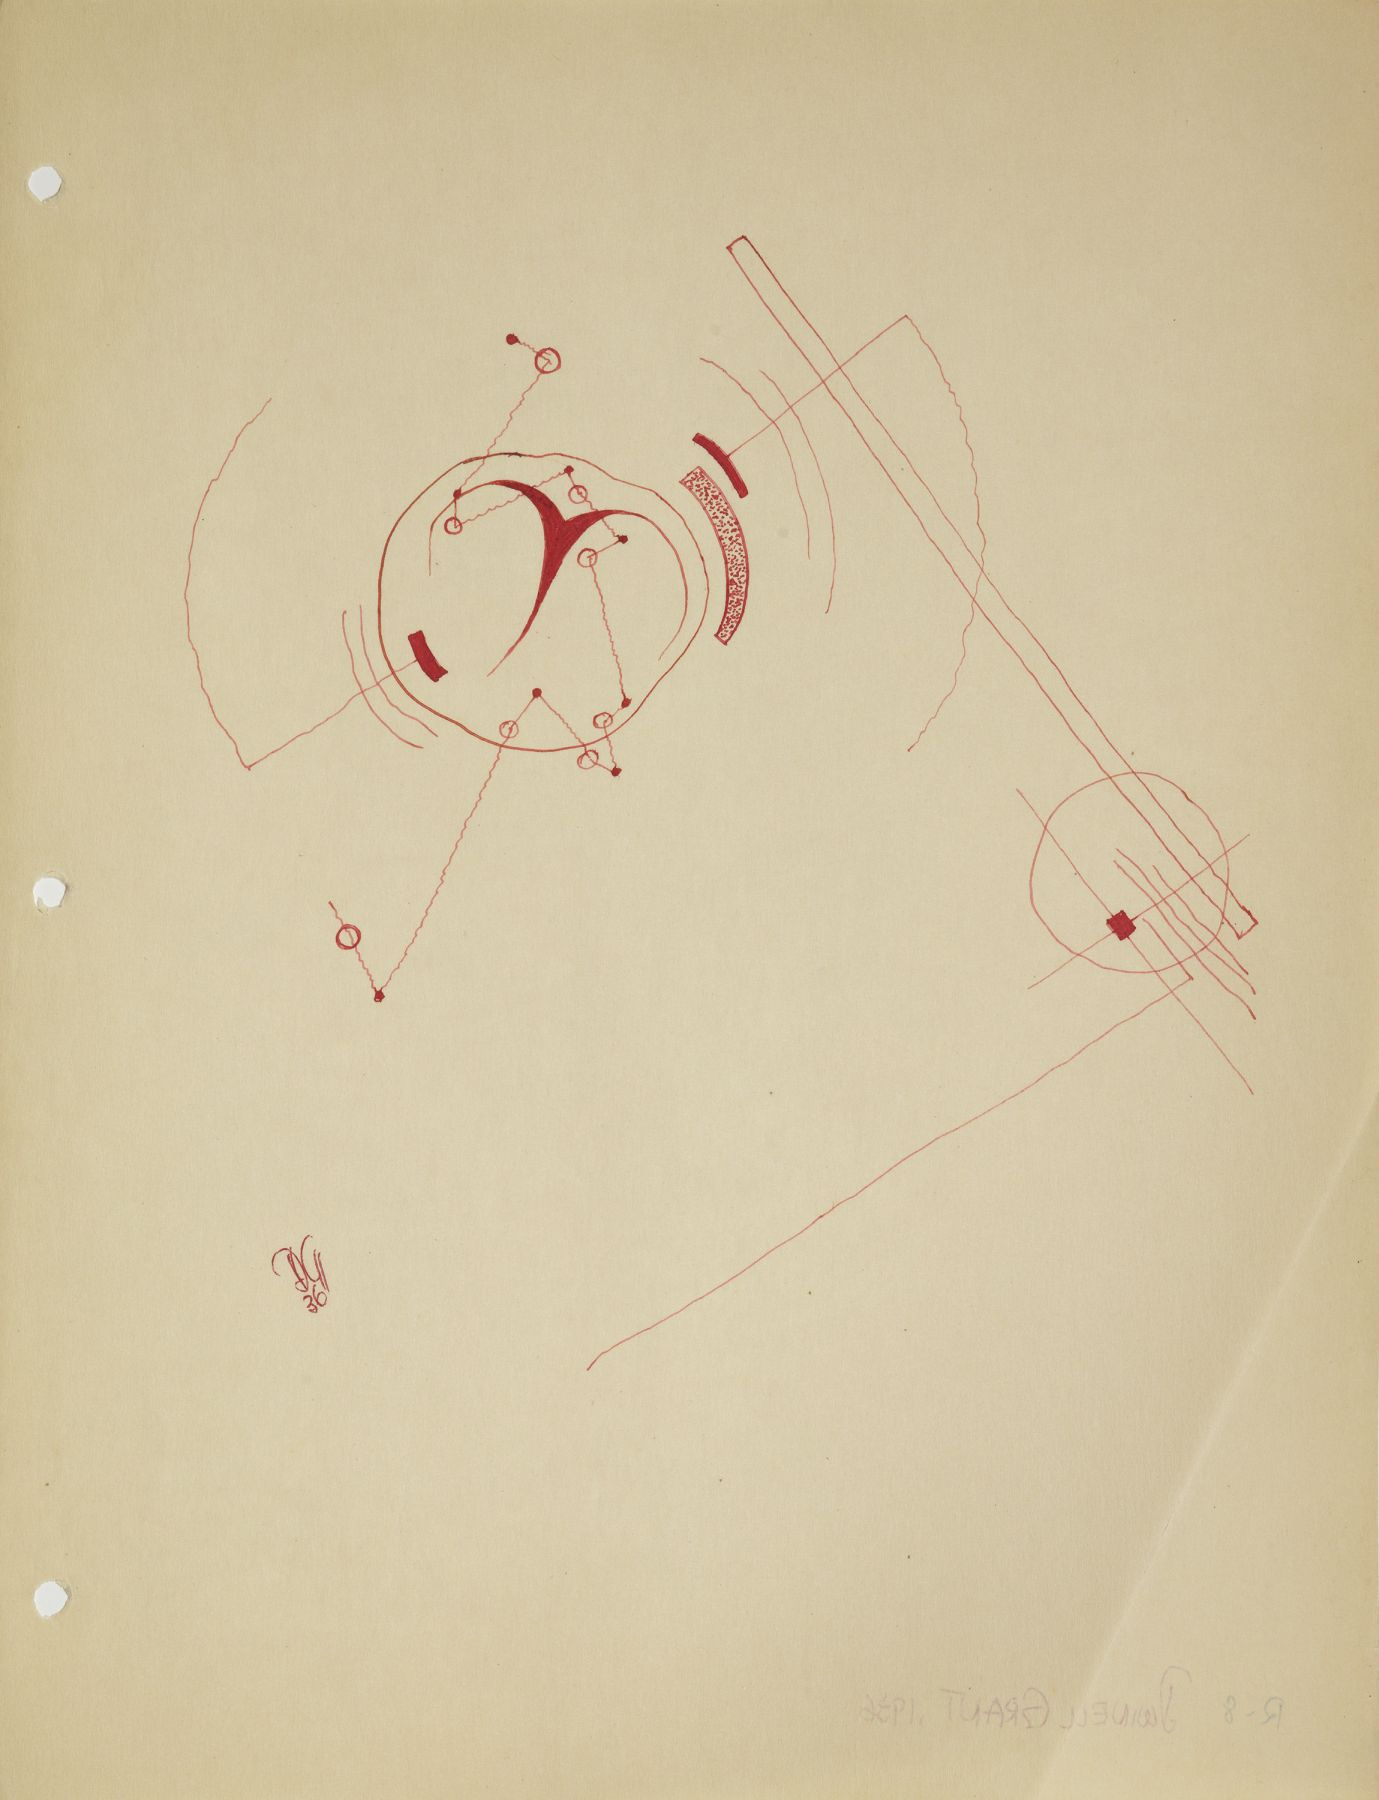 Dwinell Grant, R-8, 1936, Ink on paper, 10 1/4 x 8 inches, Red thin line sketch. Dwinell Grant made experimental modernist and constructivist films and paintings.